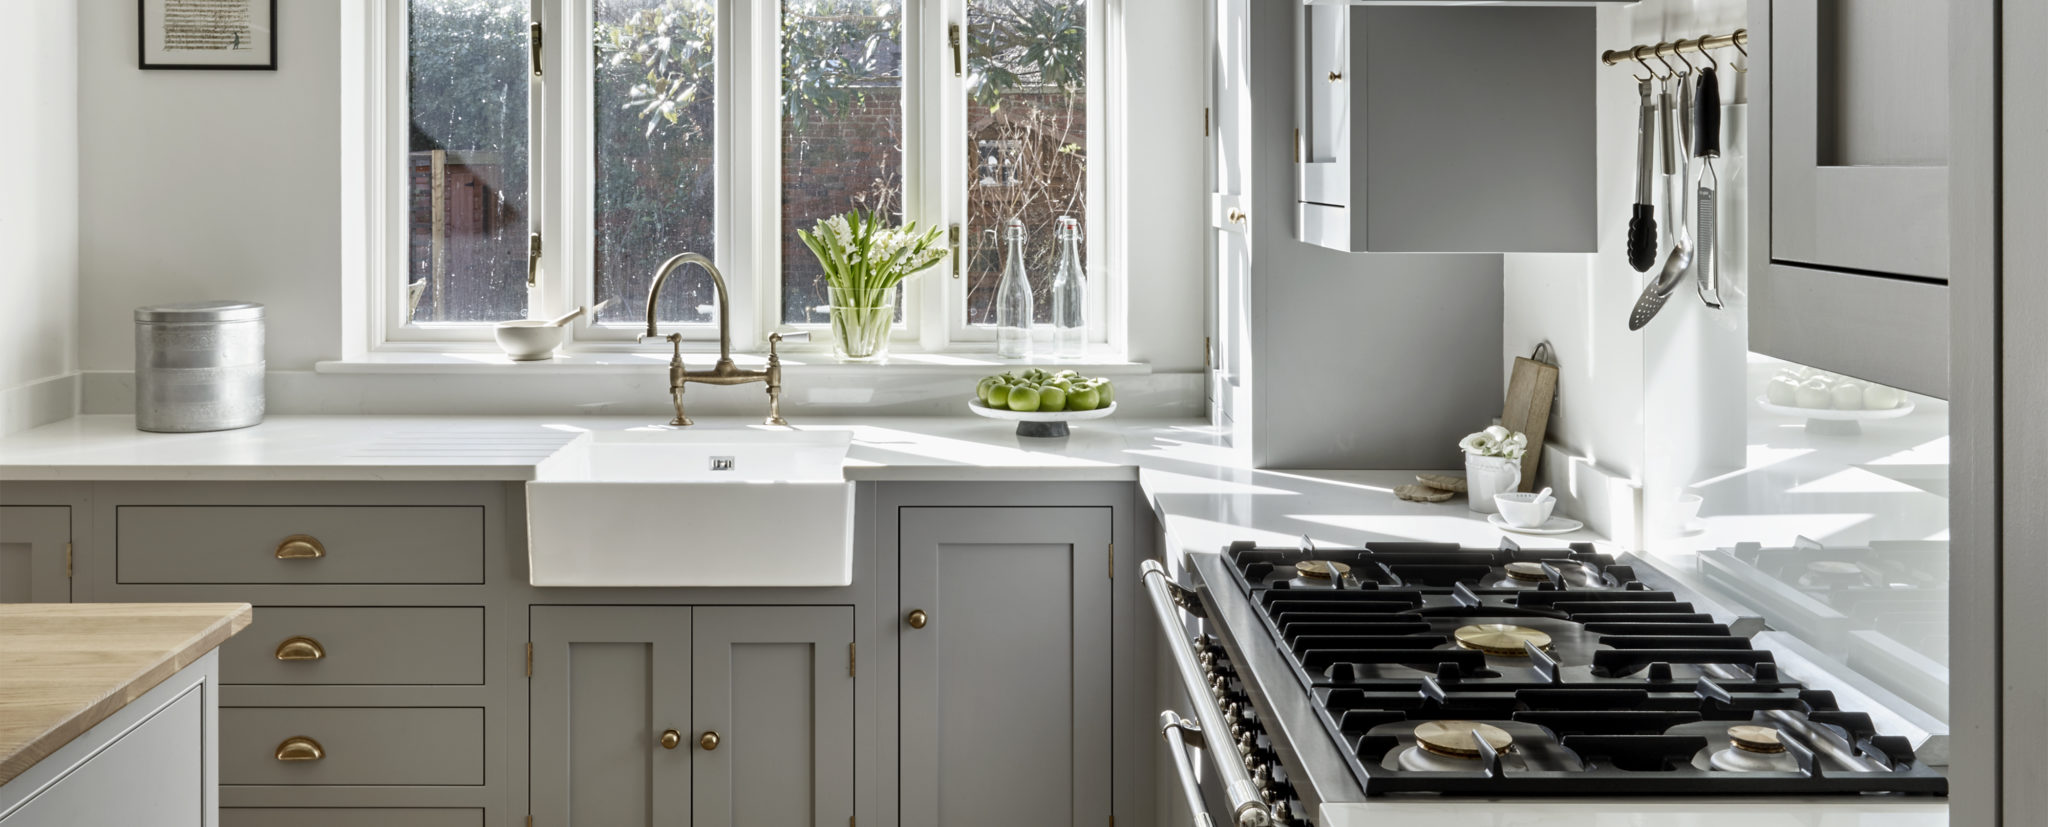 Butler sink and light grey country kitchen bespoke cabinets with antique brass handles